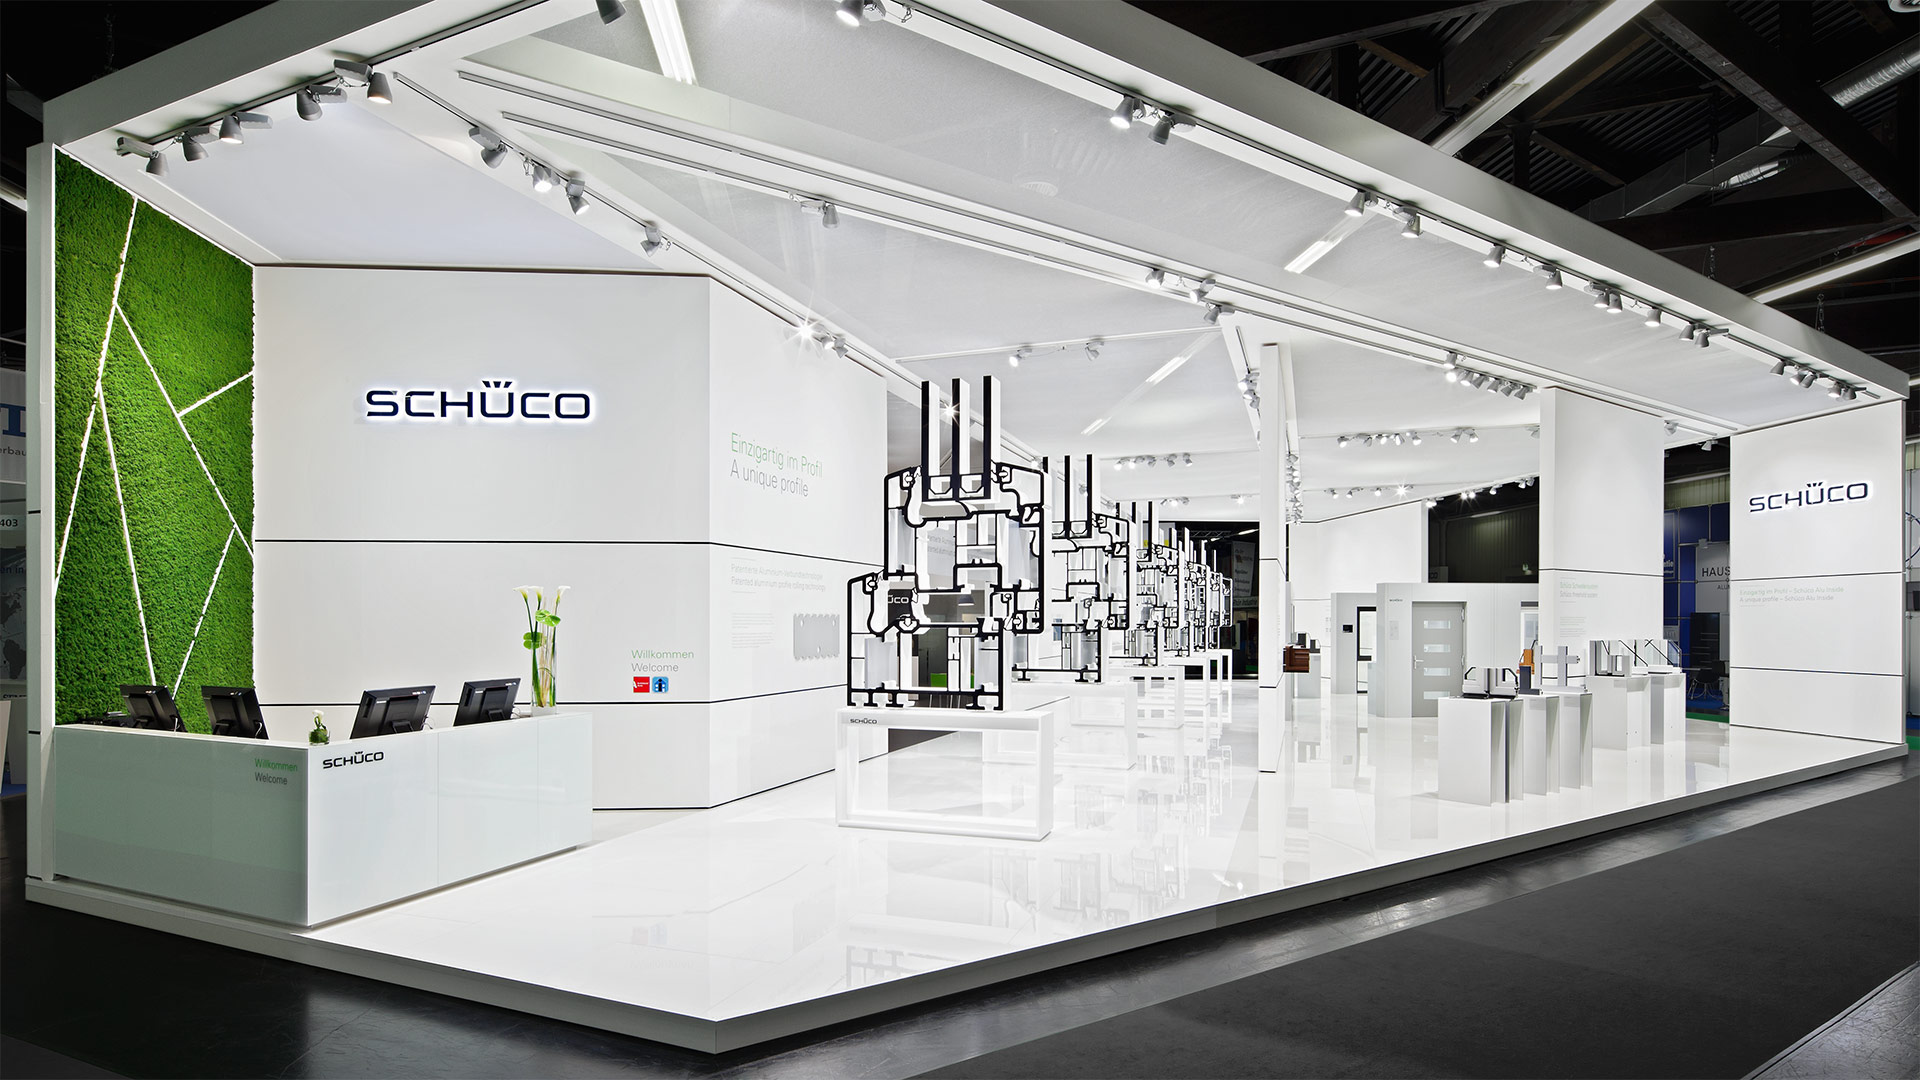 Dart stages the Schüco fair stand at the Frontale 2014